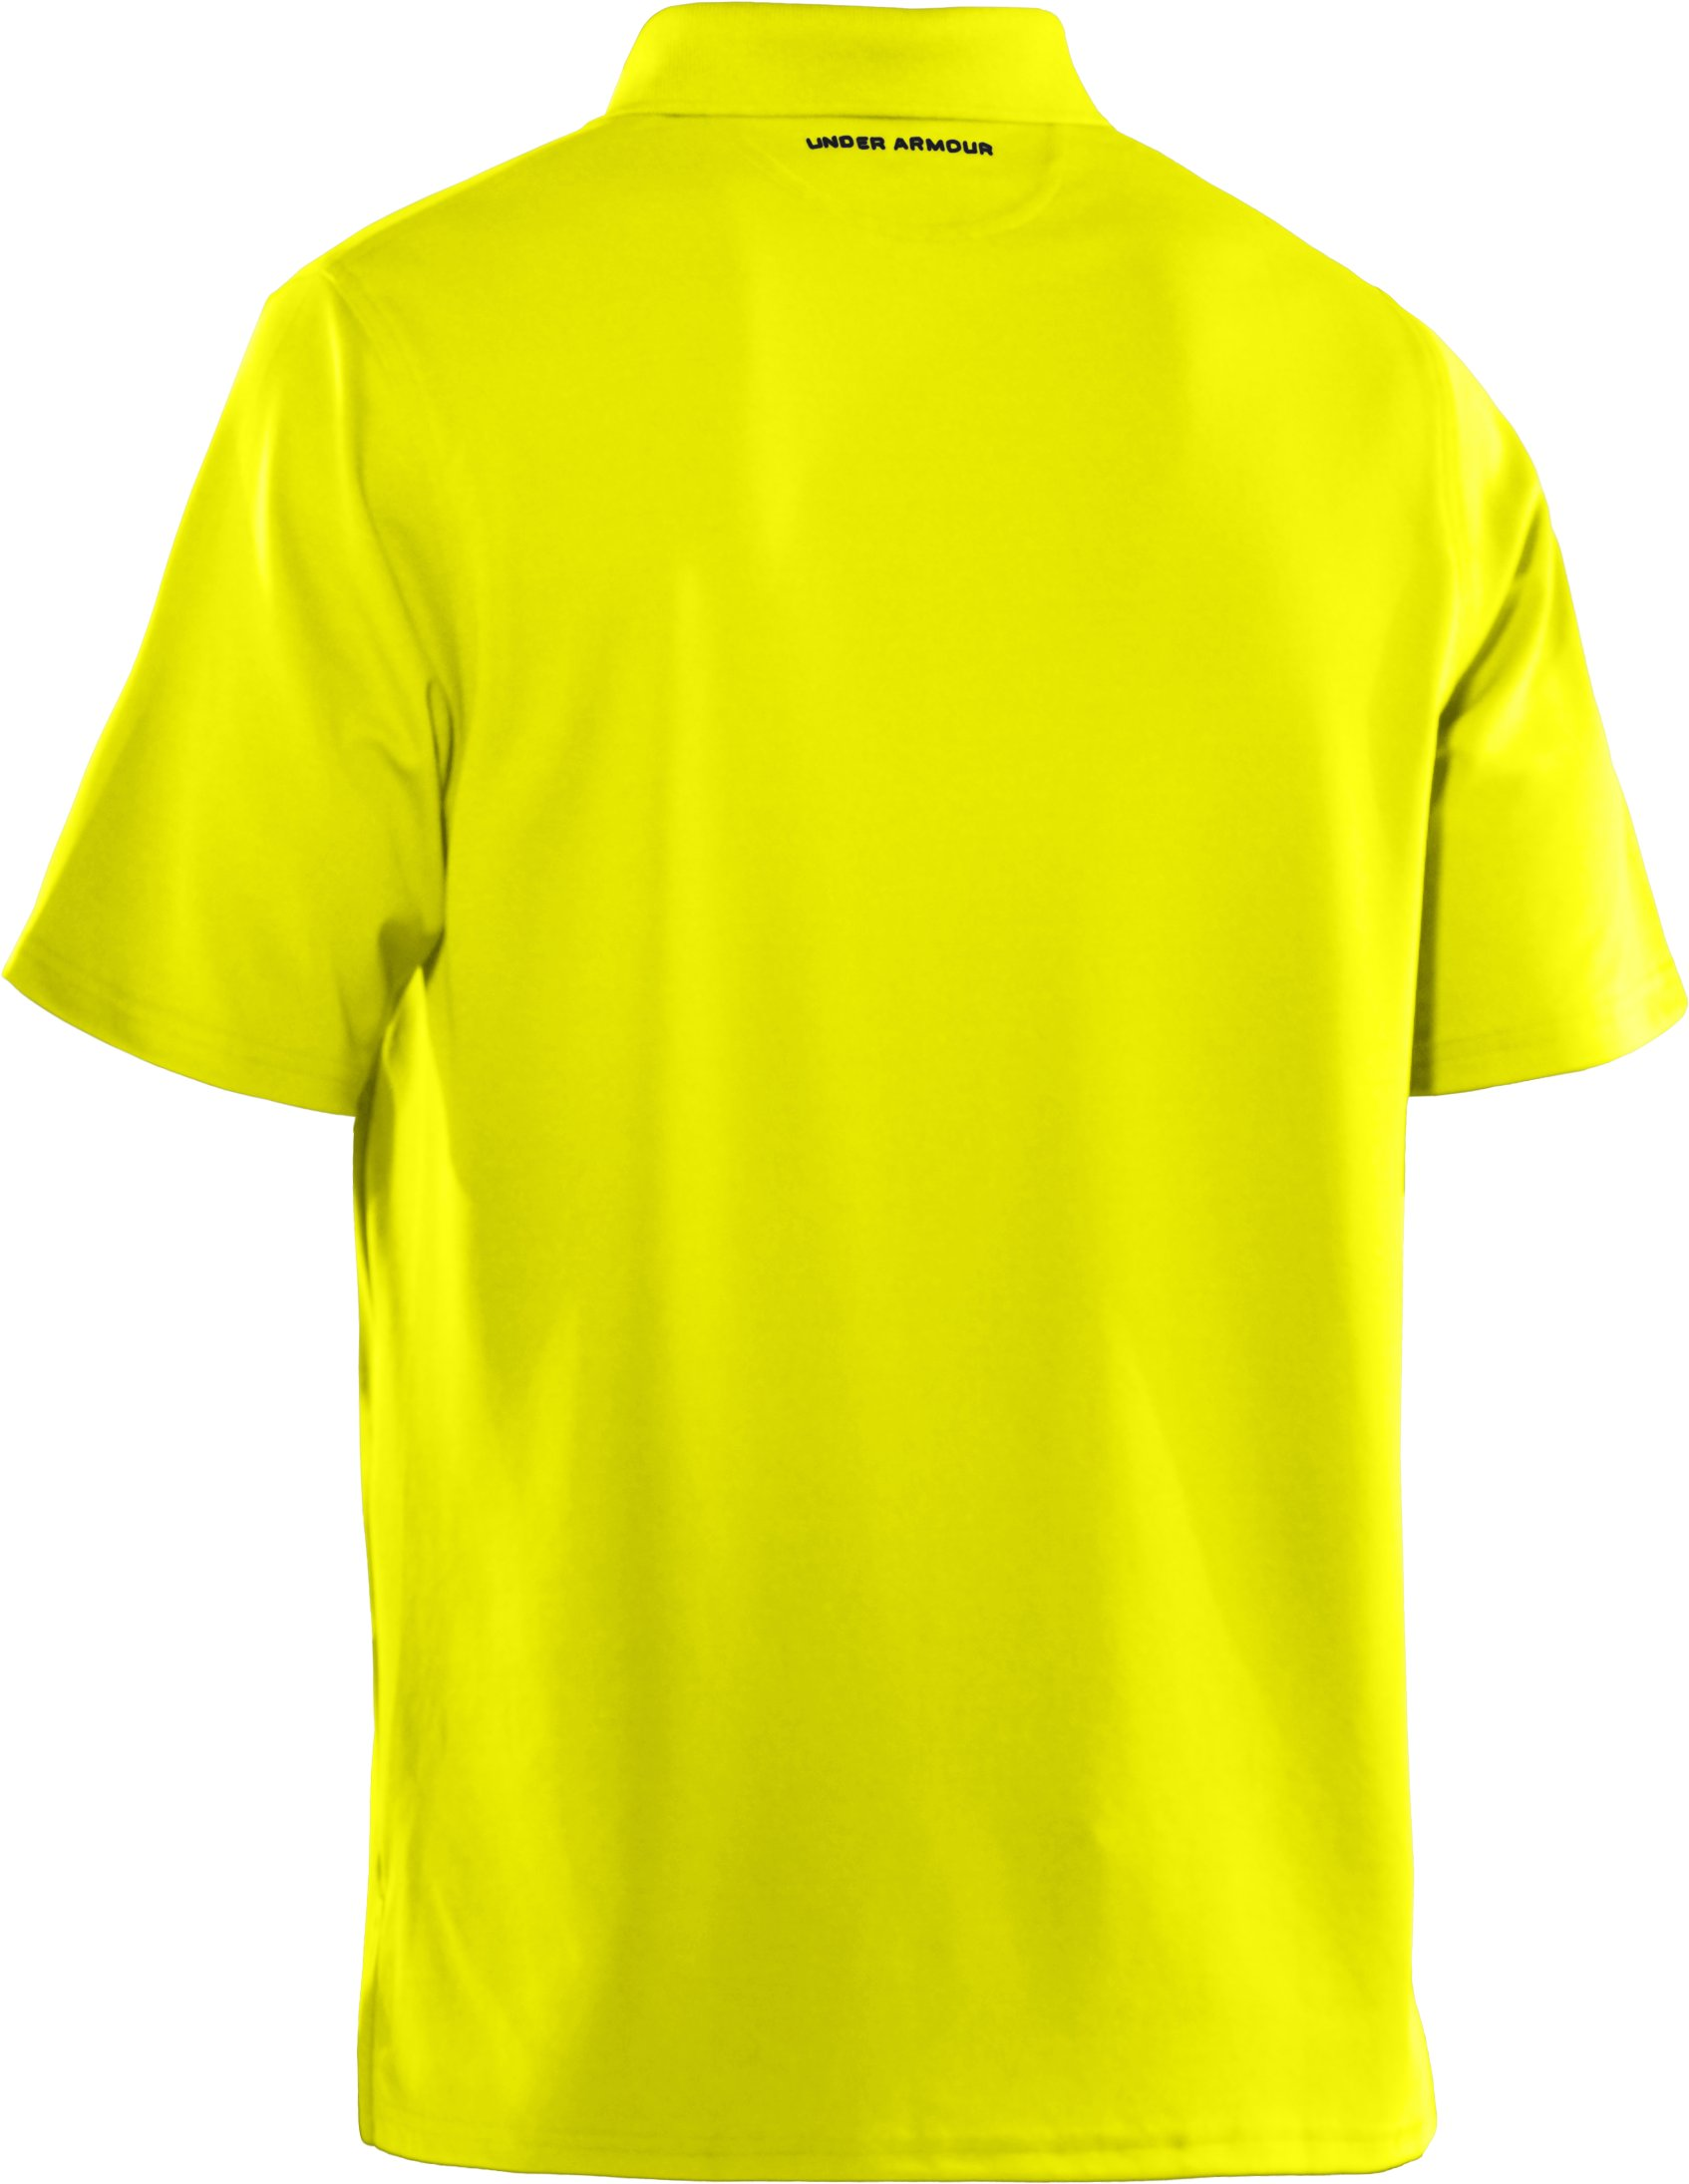 Men's UA Performance Polo — Regular Fit, High-Vis Yellow